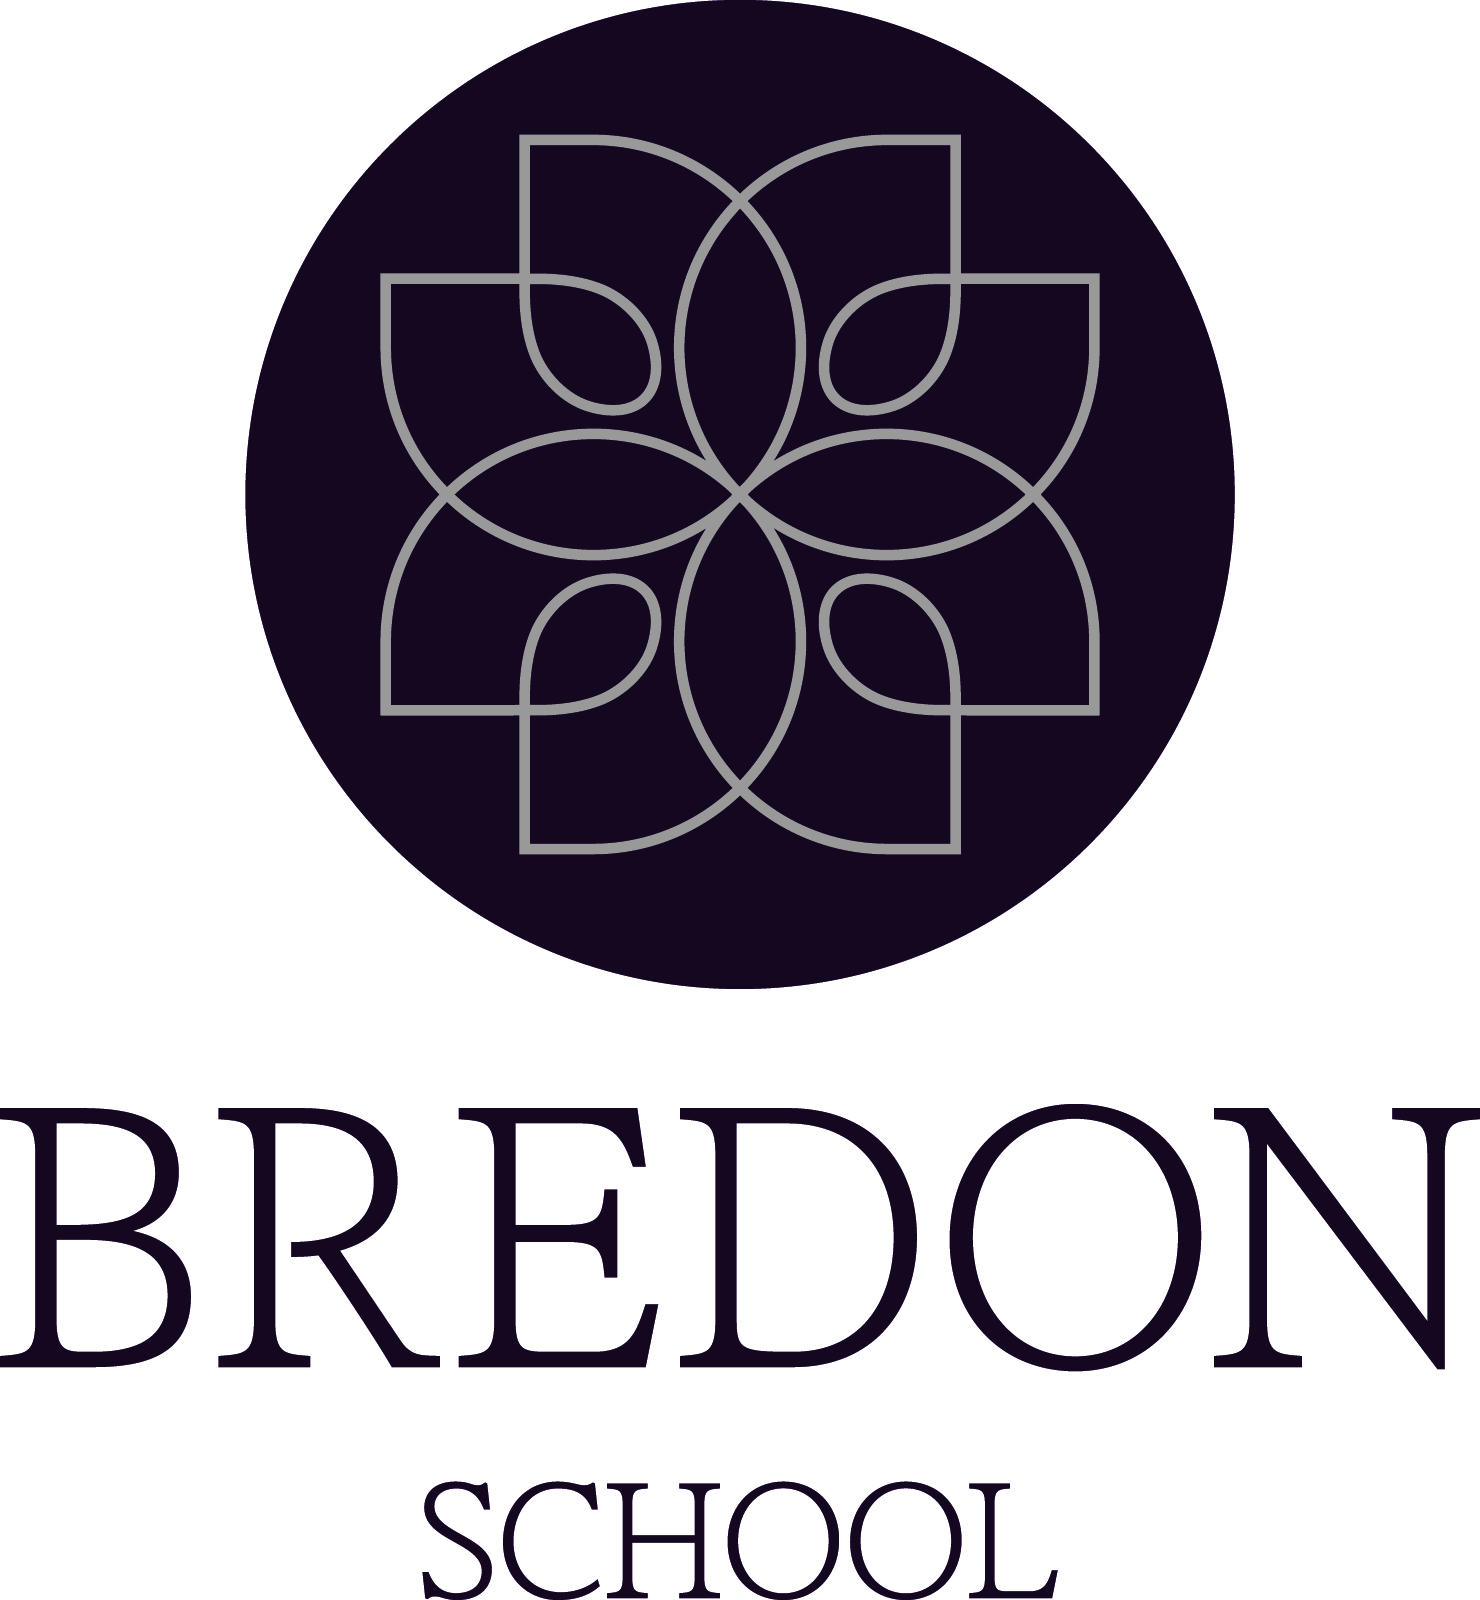 Bredon School, Bushley, Gloucestershire, England | Dickinson | British Boarding School Consulting